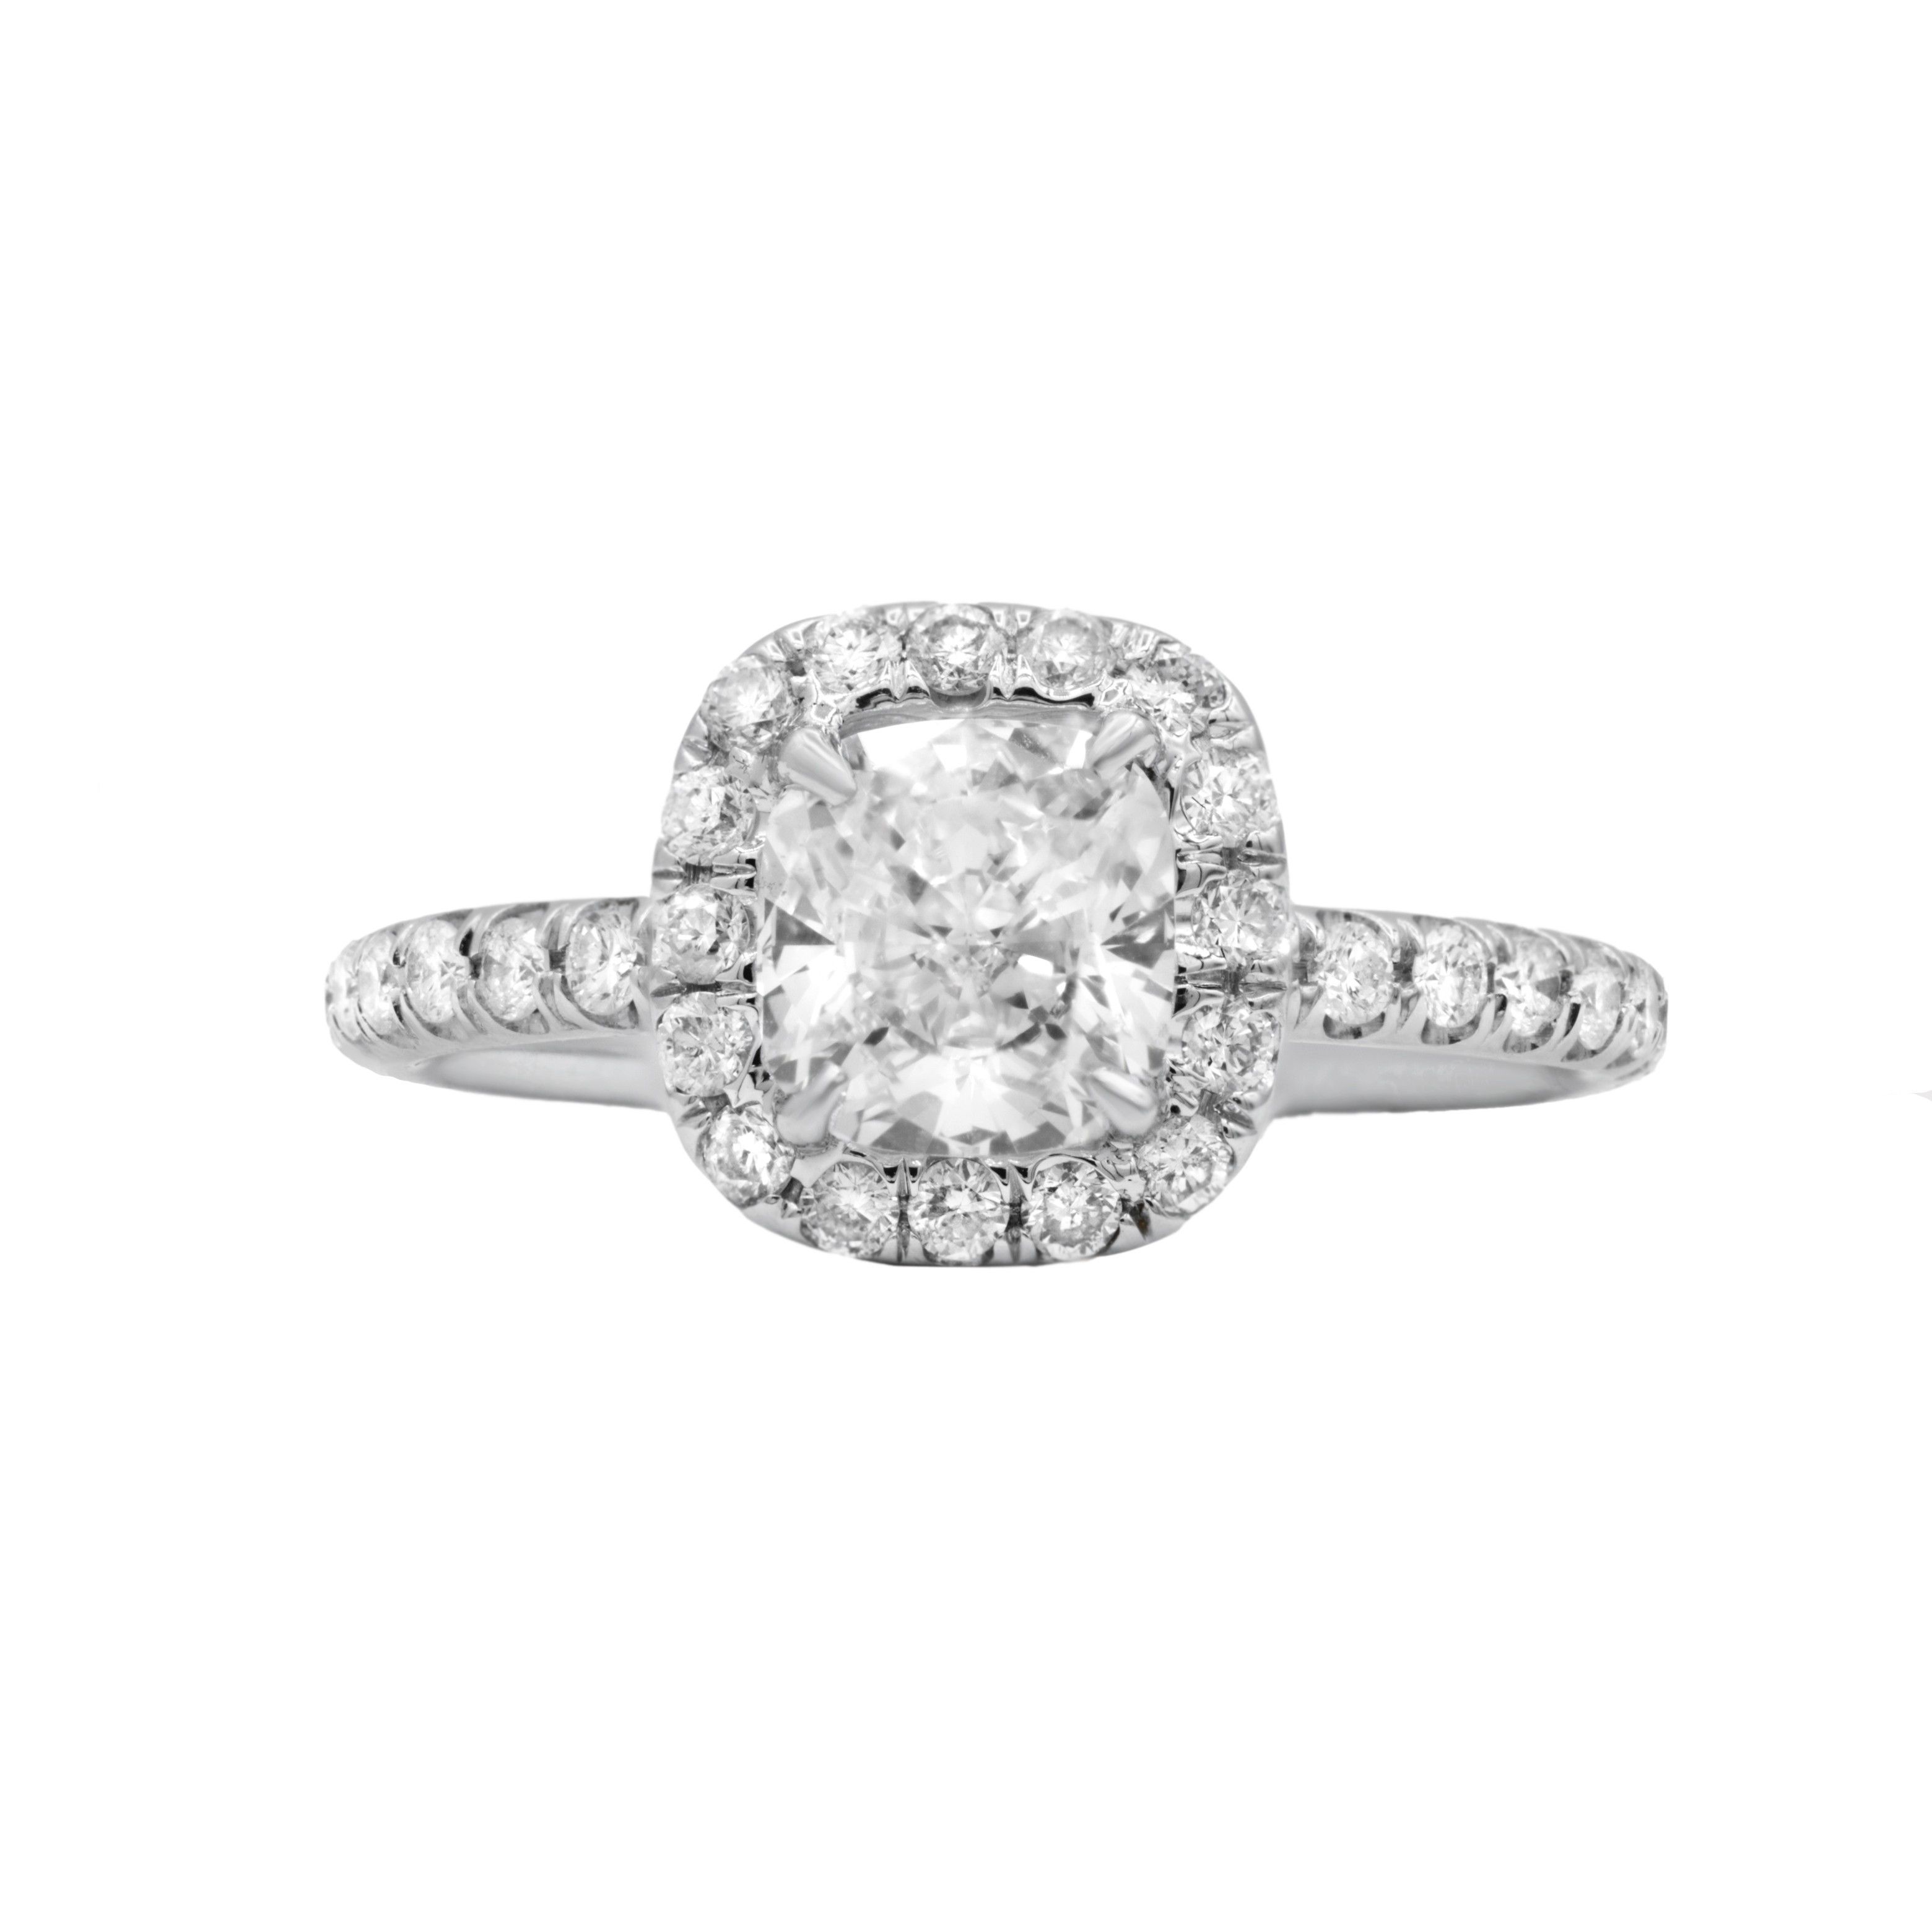 Custom made GIA certified cushion cut DSI1 diamond ring